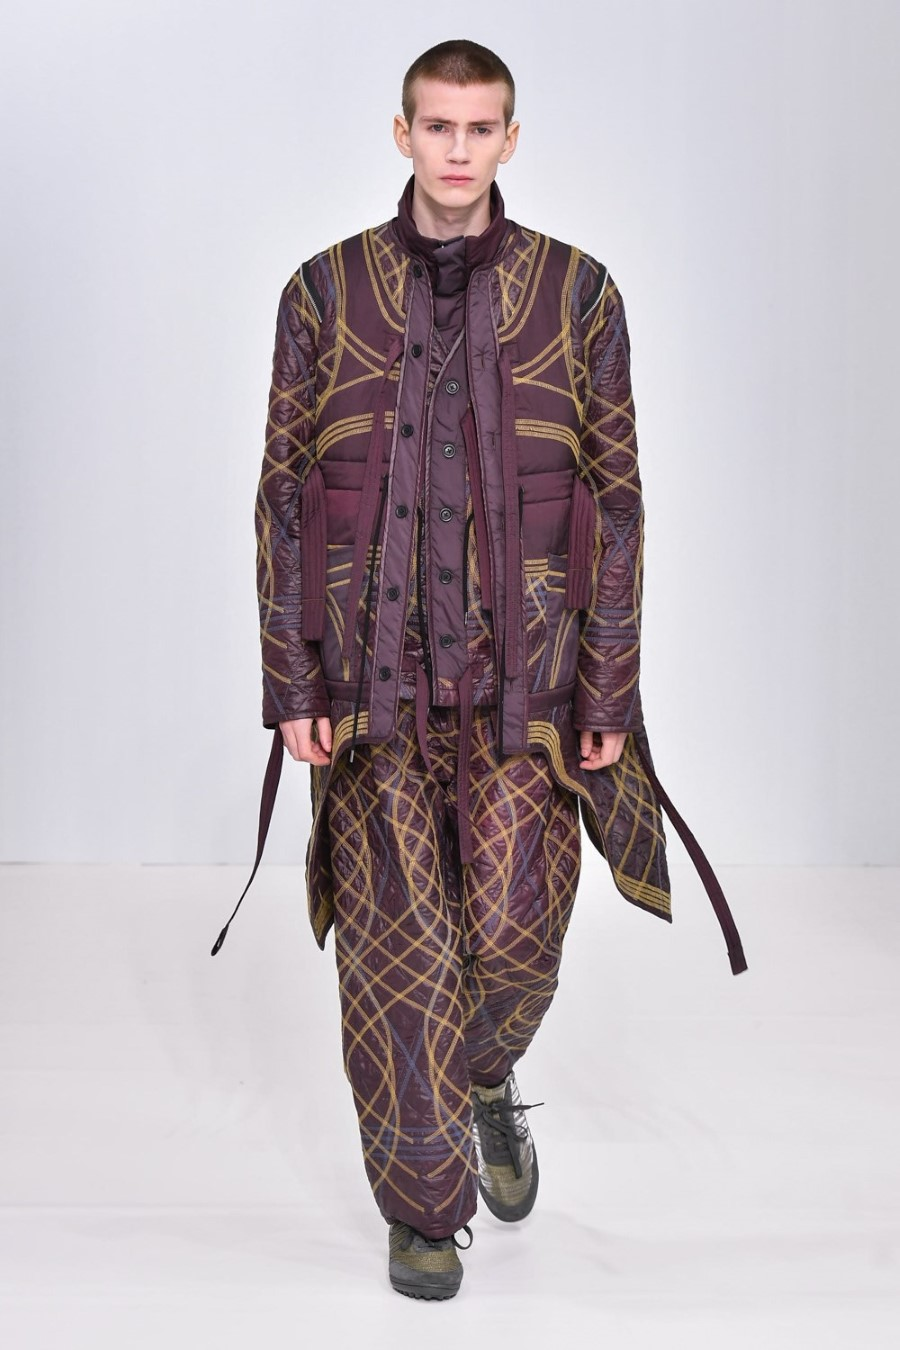 Craig Green - Fall Winter 2020 - Paris Fashion Week Men's